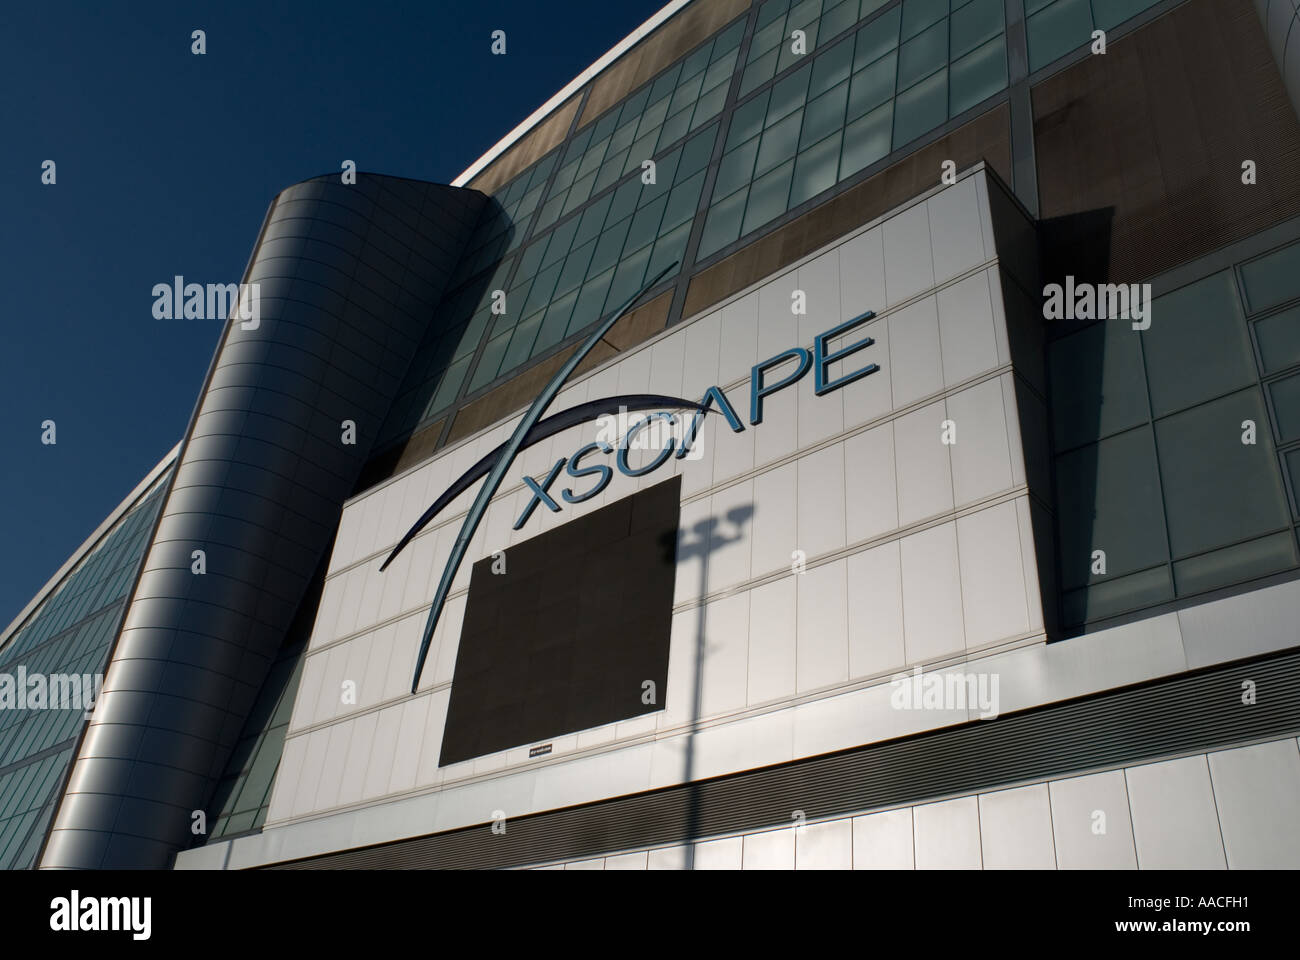 PICTURE CREDIT DOUG BLANE The Xscape building in Central Milton Keynes, the Centre MK - Stock Image